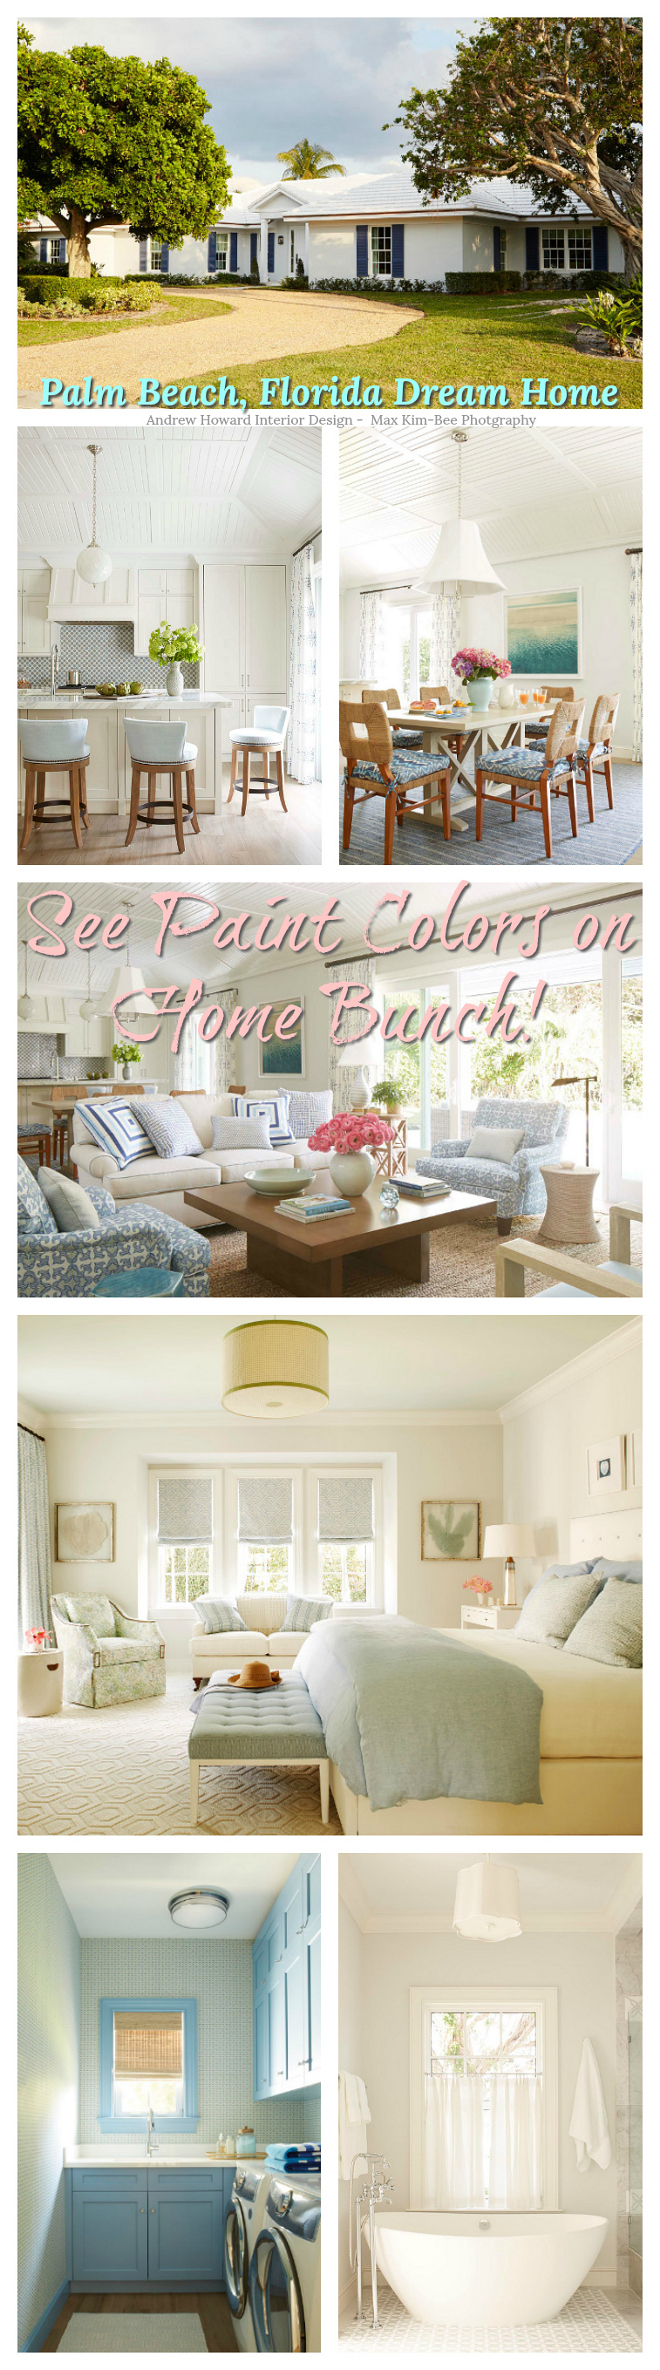 The Best Benjamin Moore Paint Colors - Home Bunch Interior Design Ideas